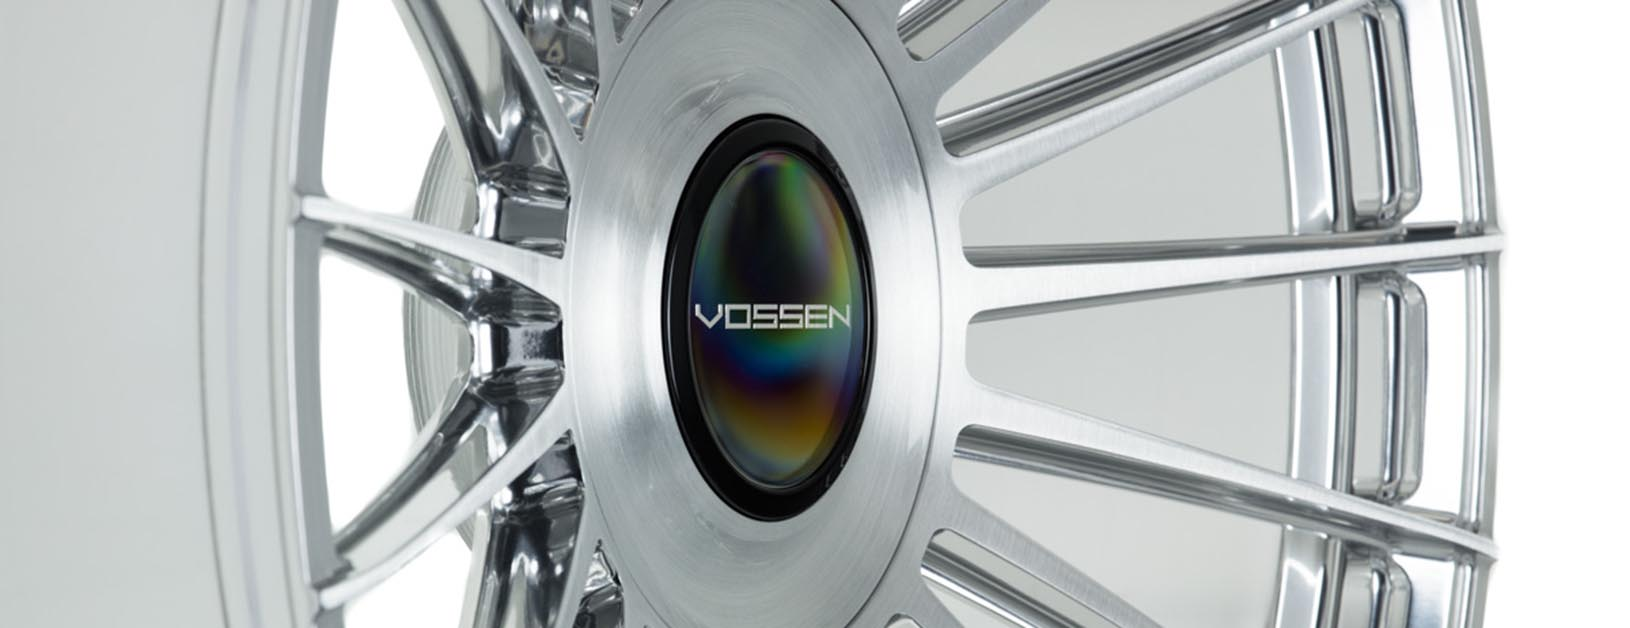 COMING-SOON-Vossen-Forged-S17-13-Wheel-C04-Gloss-Clear-©-Vossen-Wheels-2018-1028-1 (2)